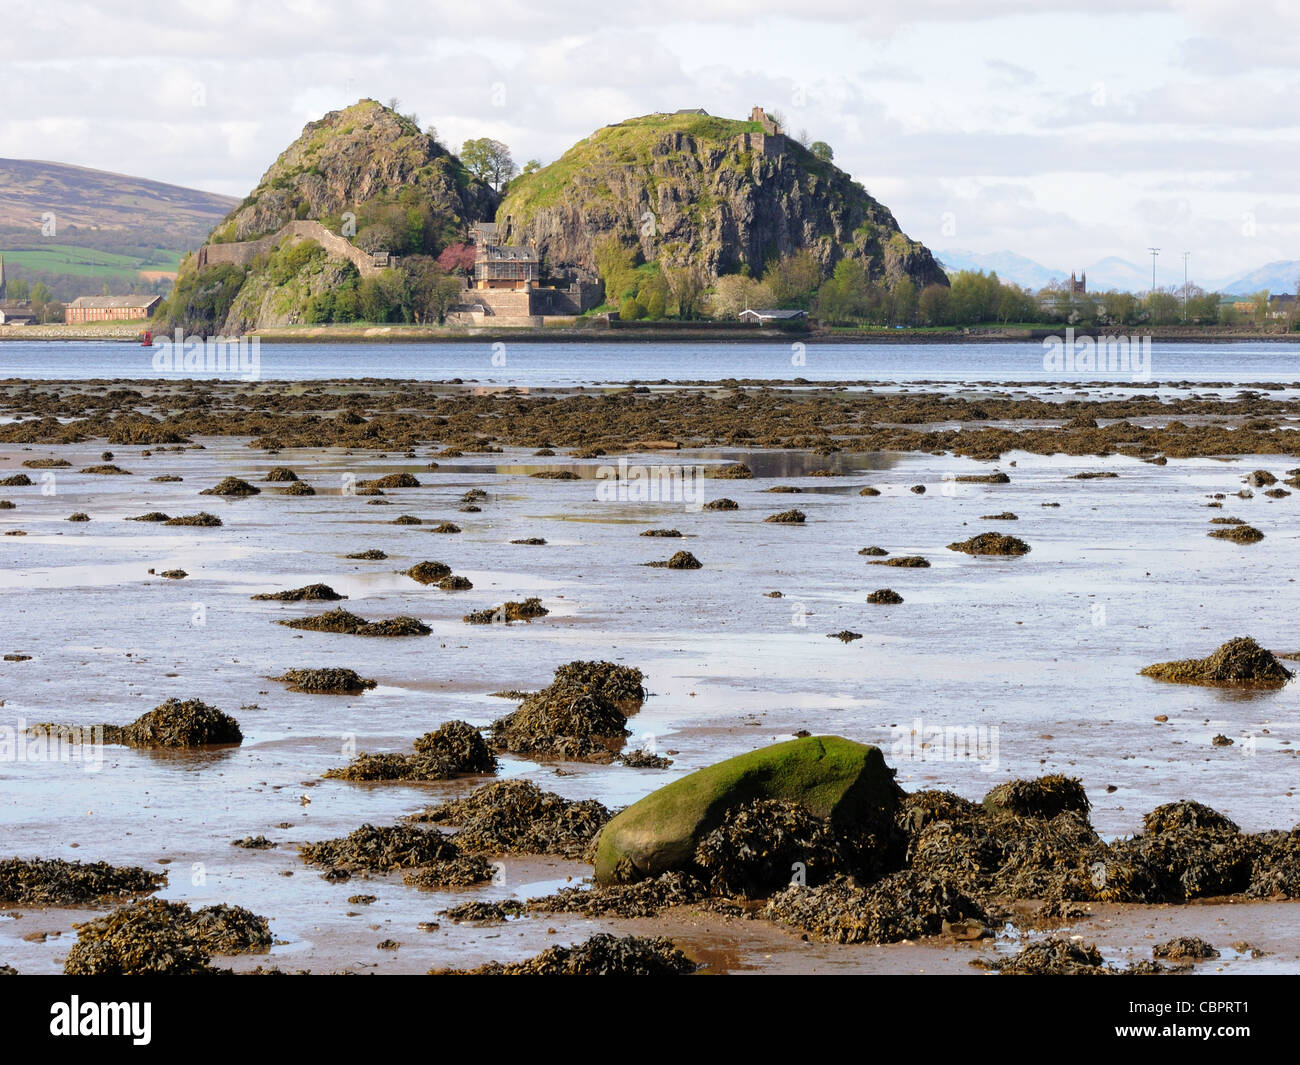 Dumbarton Rock with castle, River Clyde, and the tide is out. - Stock Image